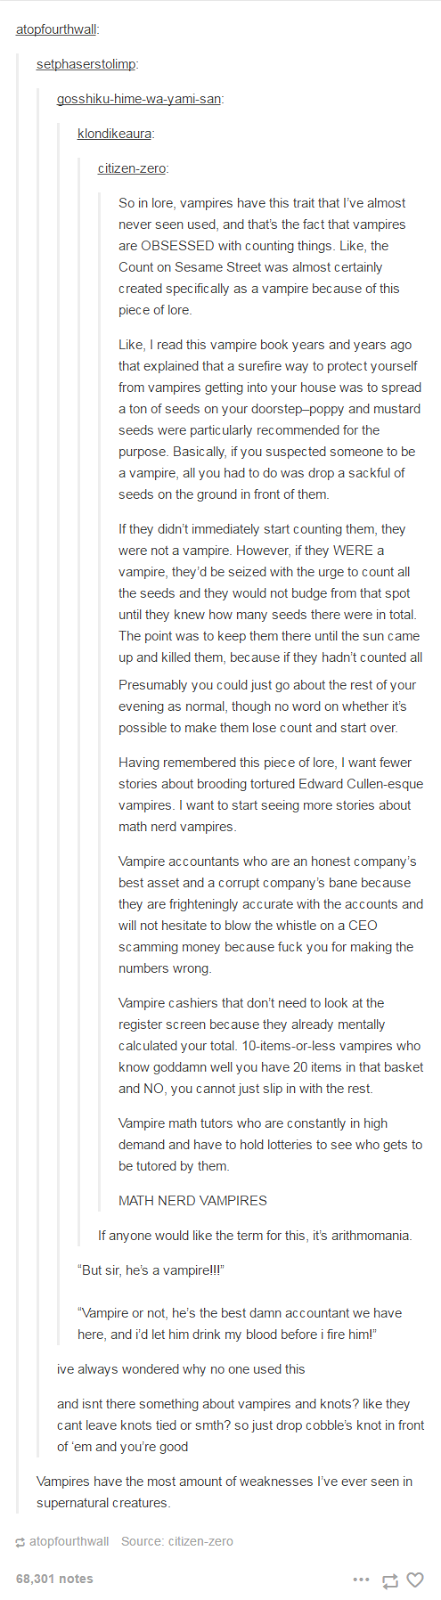 Vampires with arithomania as a character flaw